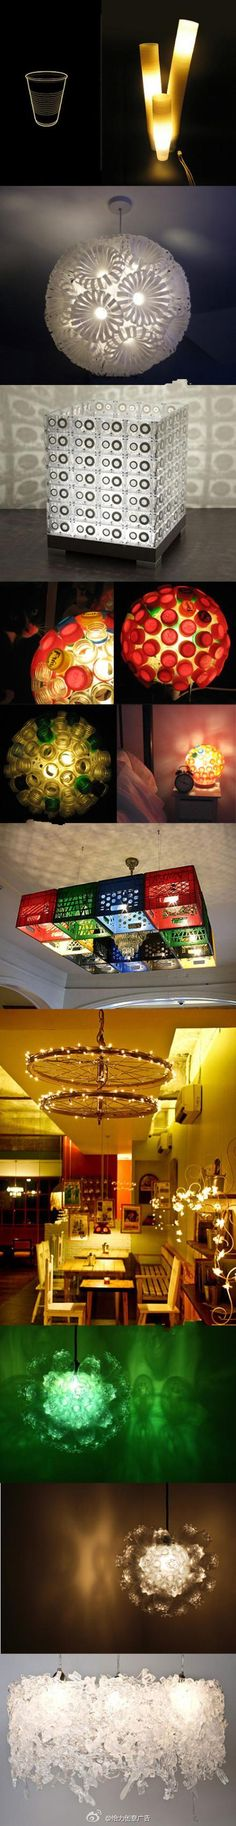 These beautiful lights are common with our old material transformation. Recycled Crafts, Diy And Crafts, Cool Lighting, Lighting Ideas, Unique Lamps, Light Project, Creative Advertising, Do It Yourself Projects, Beautiful Lights